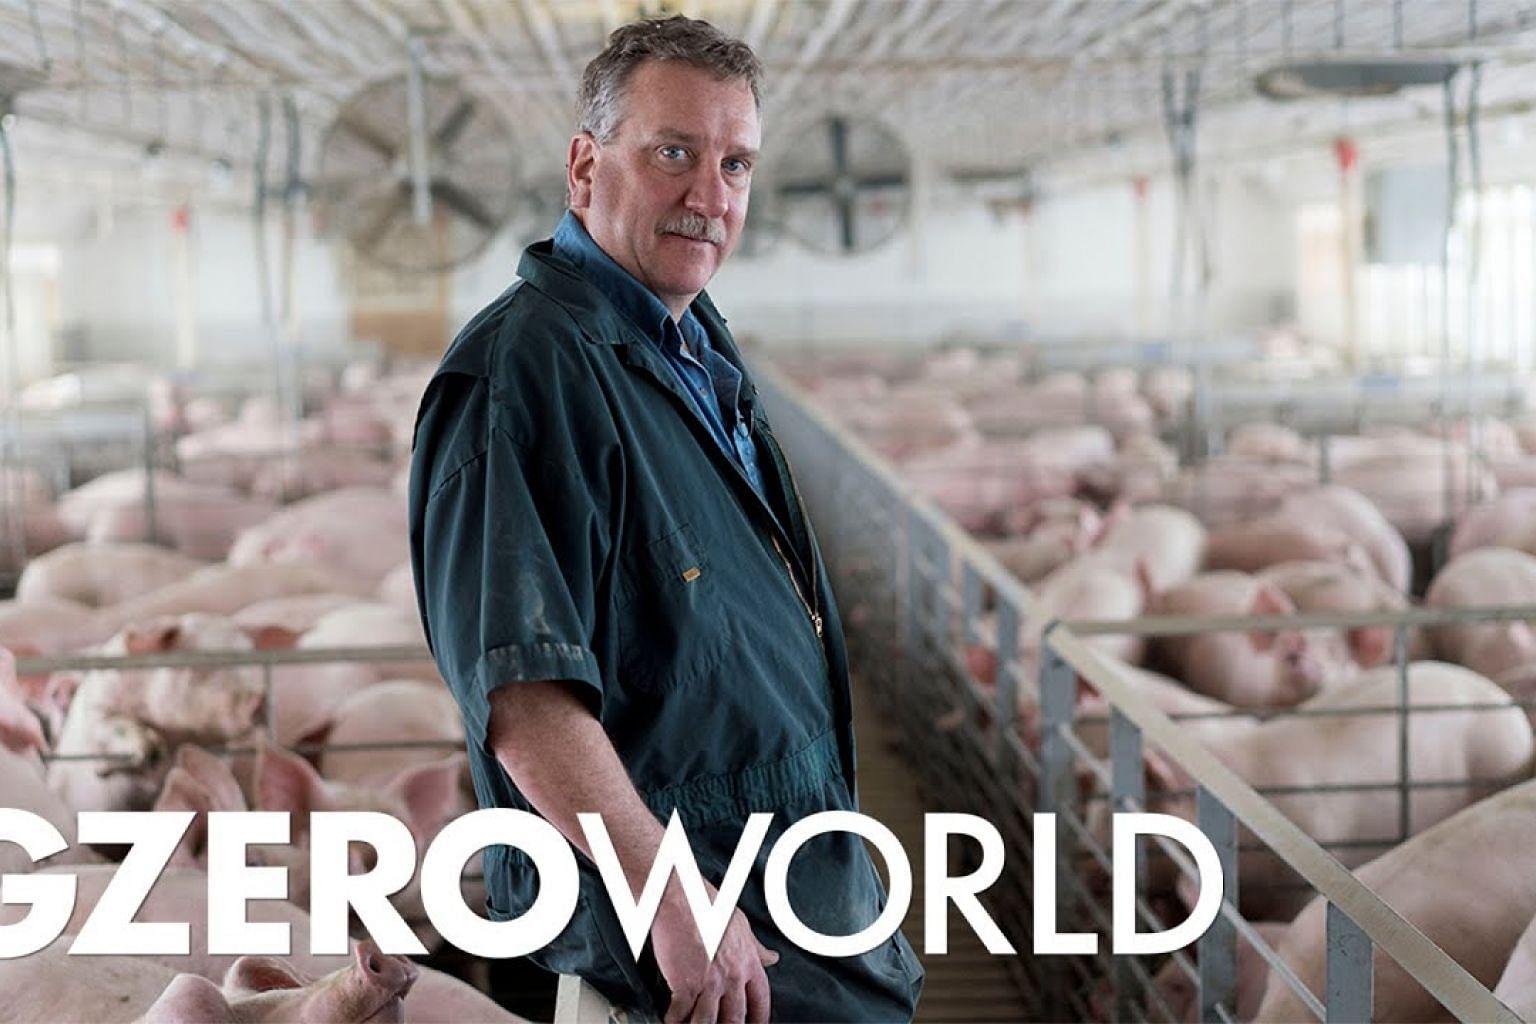 America's Meat Supply Crisis | Tom Vilsack & COVID-19 Impacts on Food | GZERO World with Ian Bremmer